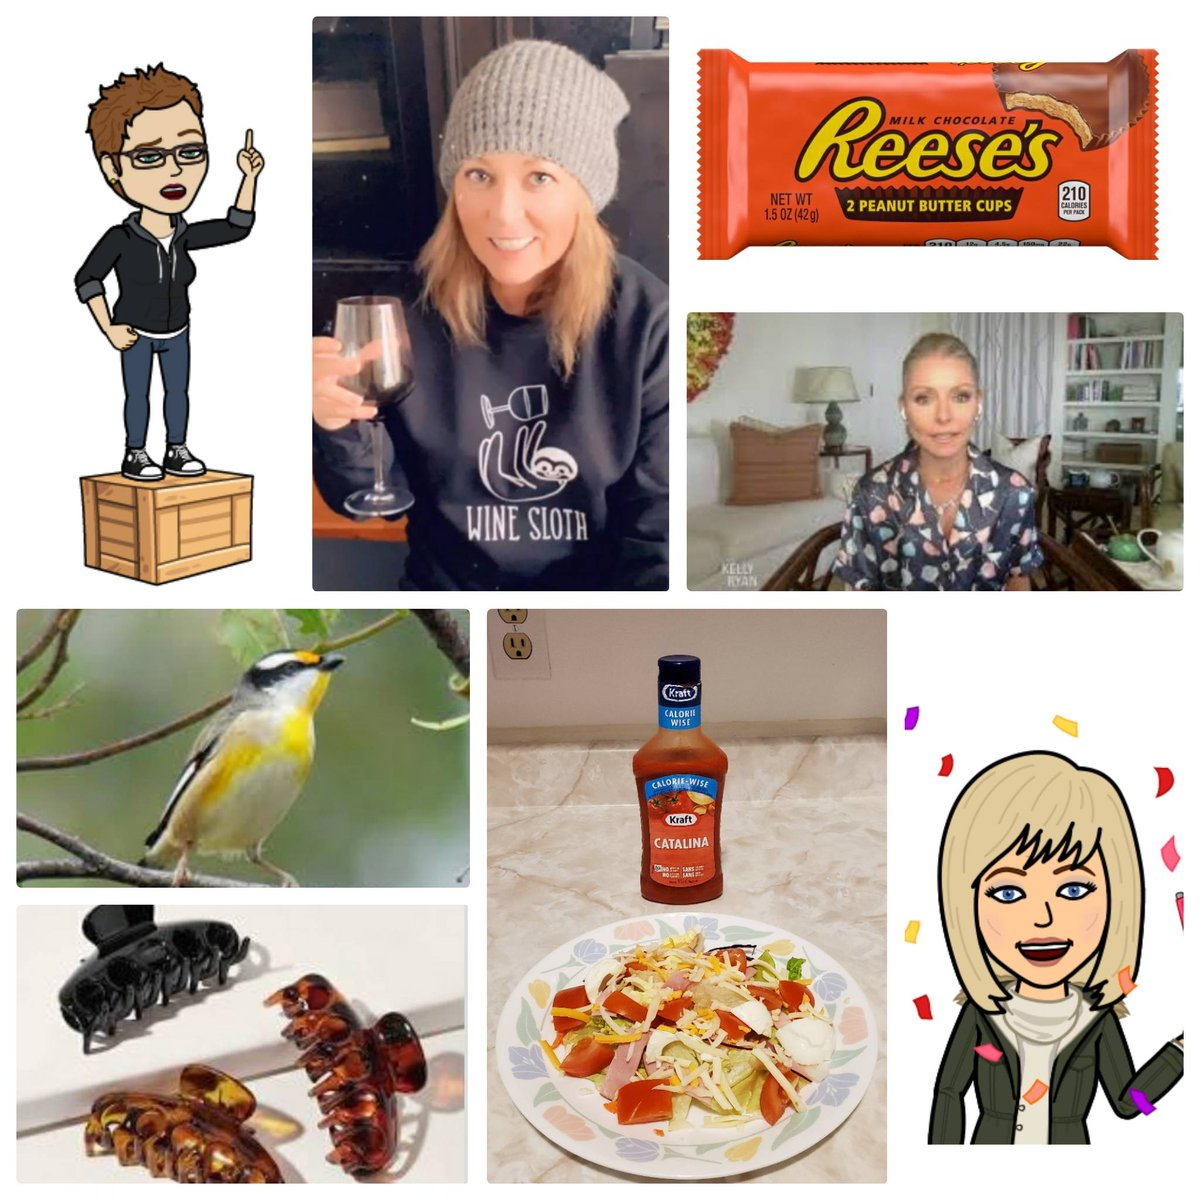 Kelly Ripa, The HHG, Salad vs Dressing, Birds, Reeces Peanut Butter Cups and Hairclips are just a few of the ridiculous topics this week! Tune in to the new episode Let Me, Help You at http://www.ismhead.podbean.com or any podcast app! Lots of laughs! #podcast #lowtreestudios #comedypic.twitter.com/YtqpnHAaaU